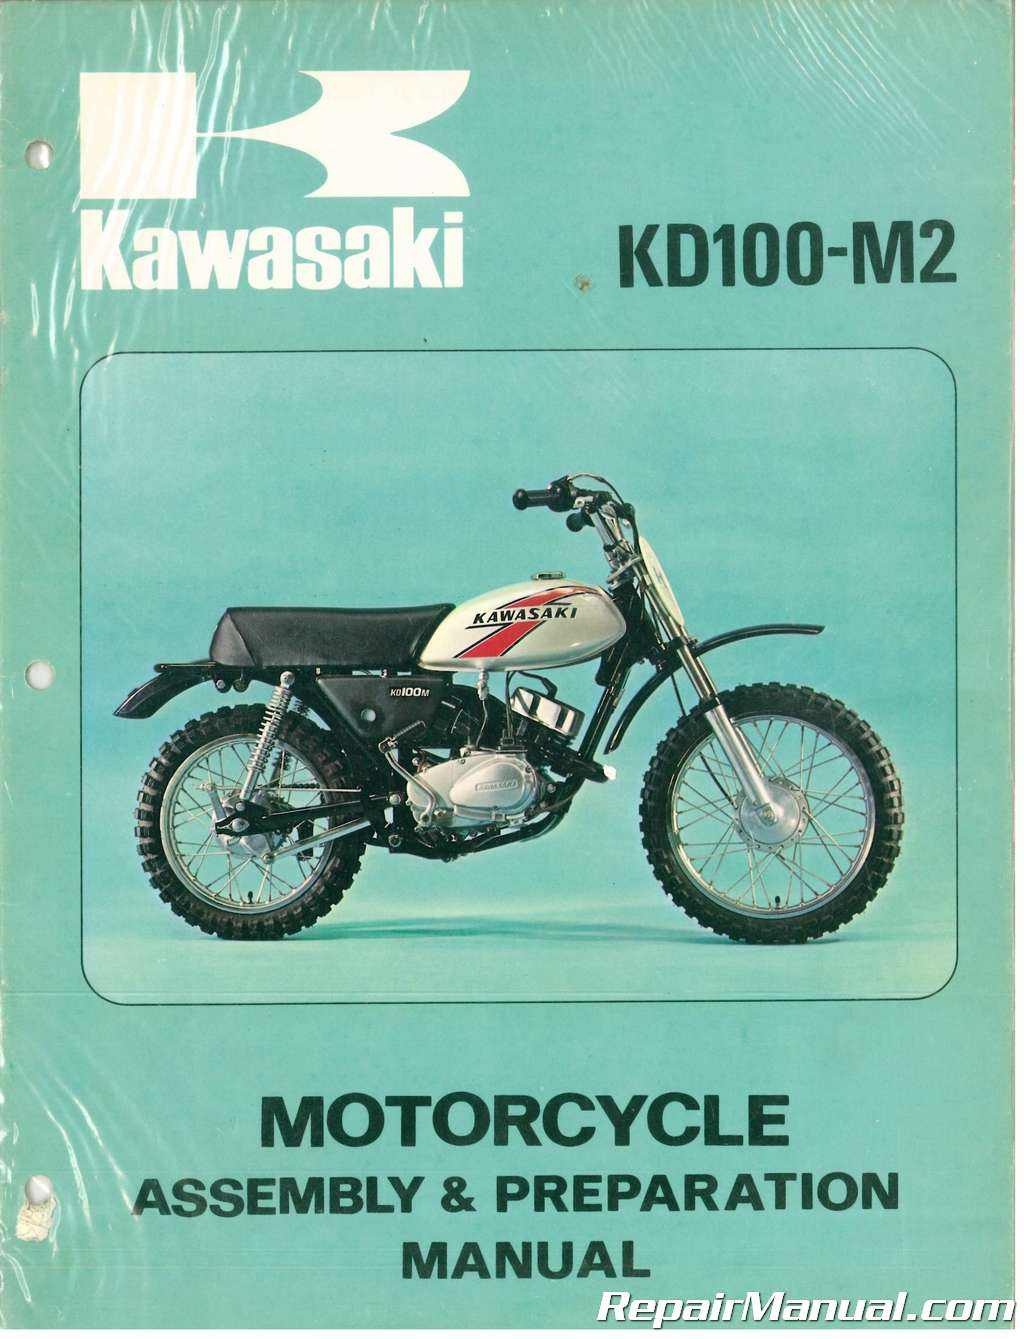 used 1977 kawasaki kd100 m2 motorcycle assembly preparation manual rh  repairmanual com